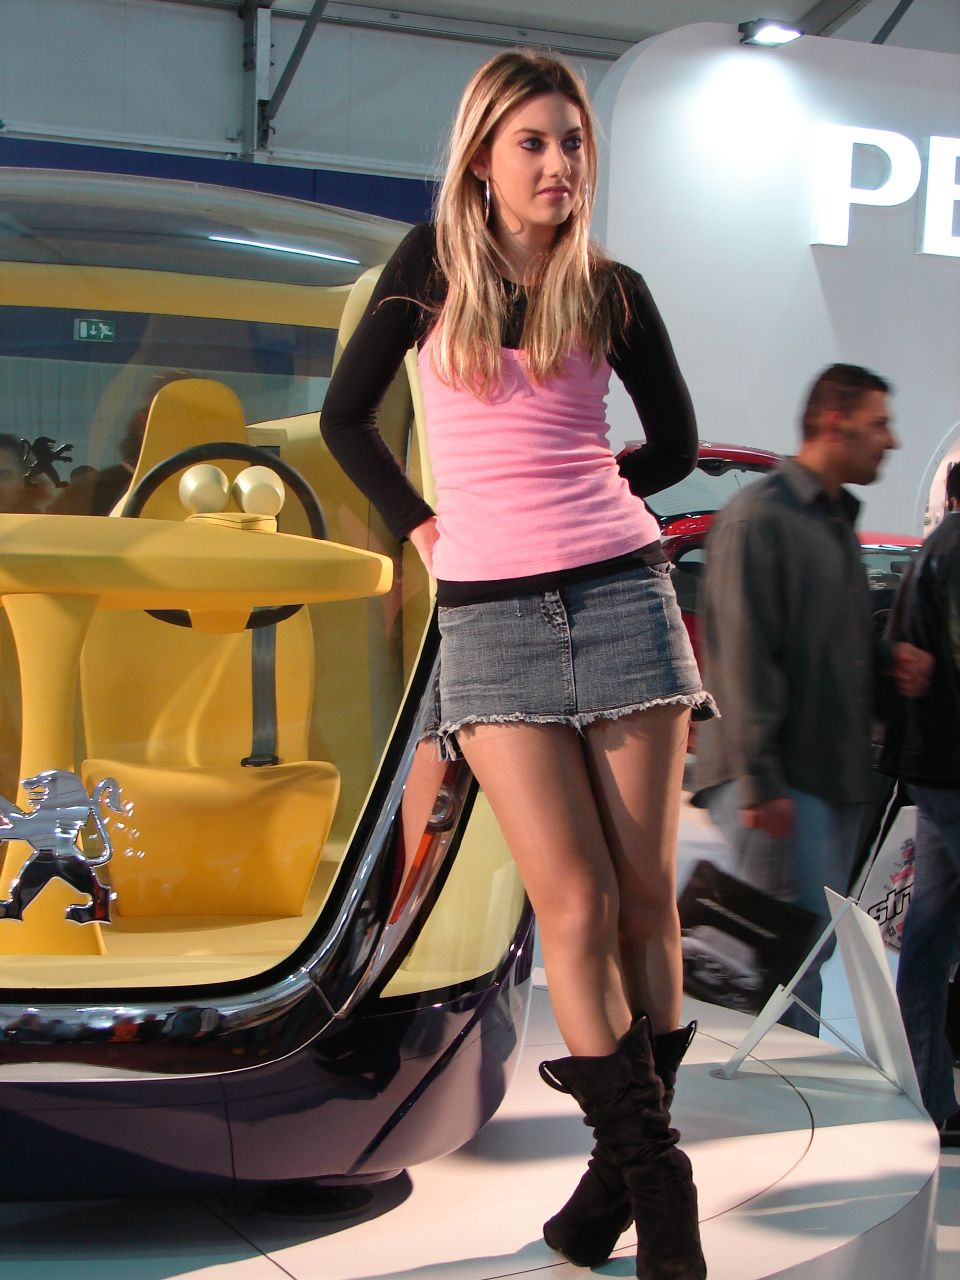 Sexy auto show girl with mini skirt